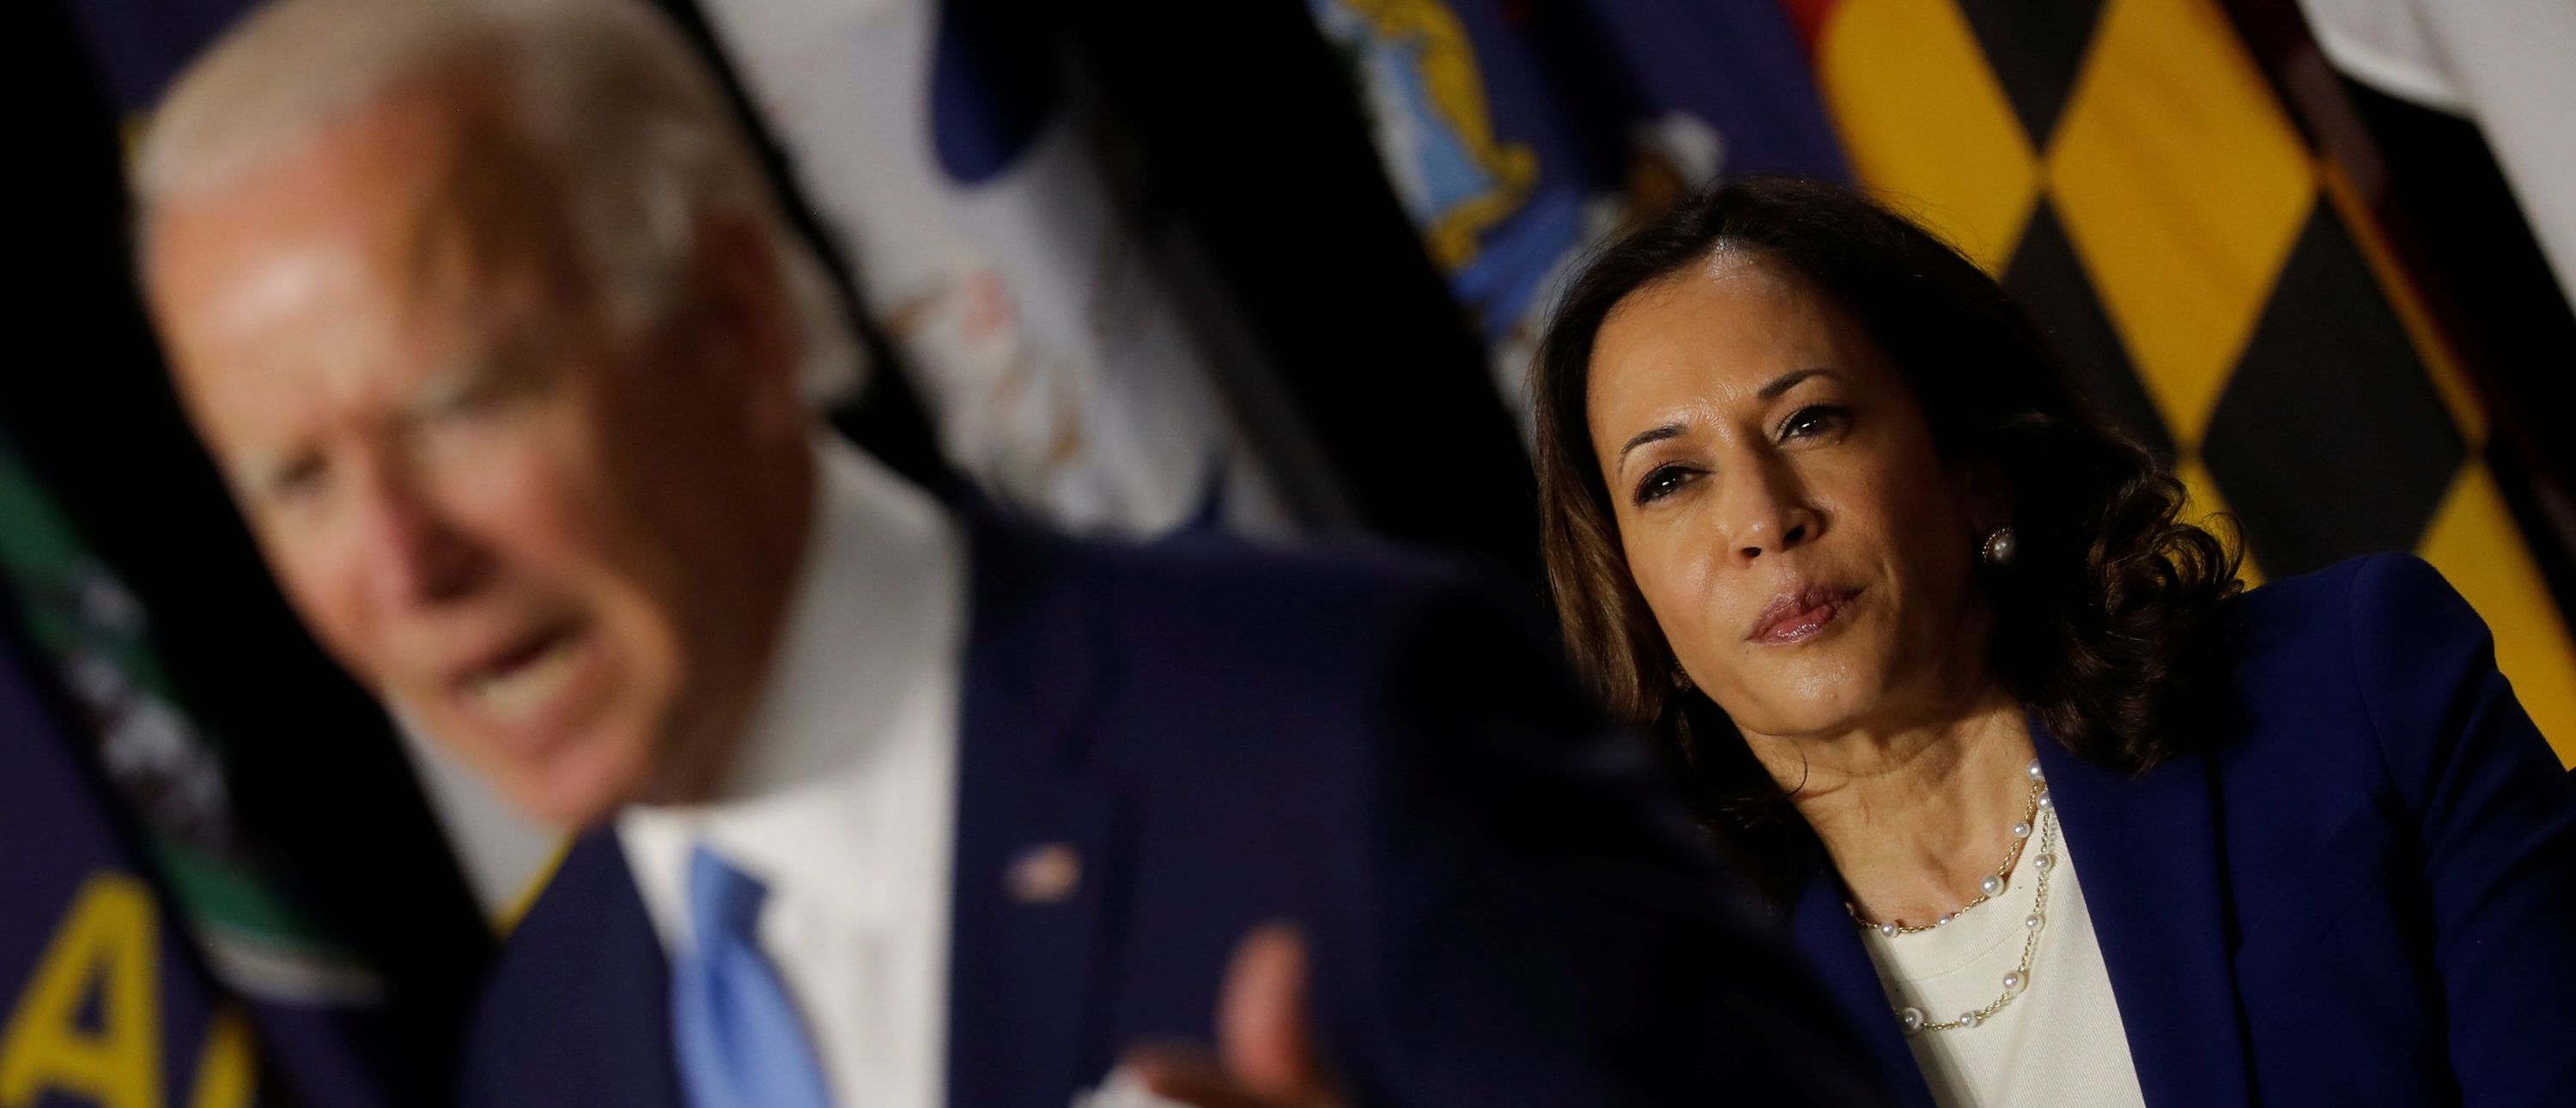 Sen. Kamala Harris Isn't The Anti-Big Tech Crusader Silicon Valley Fears, Tech Insiders Say